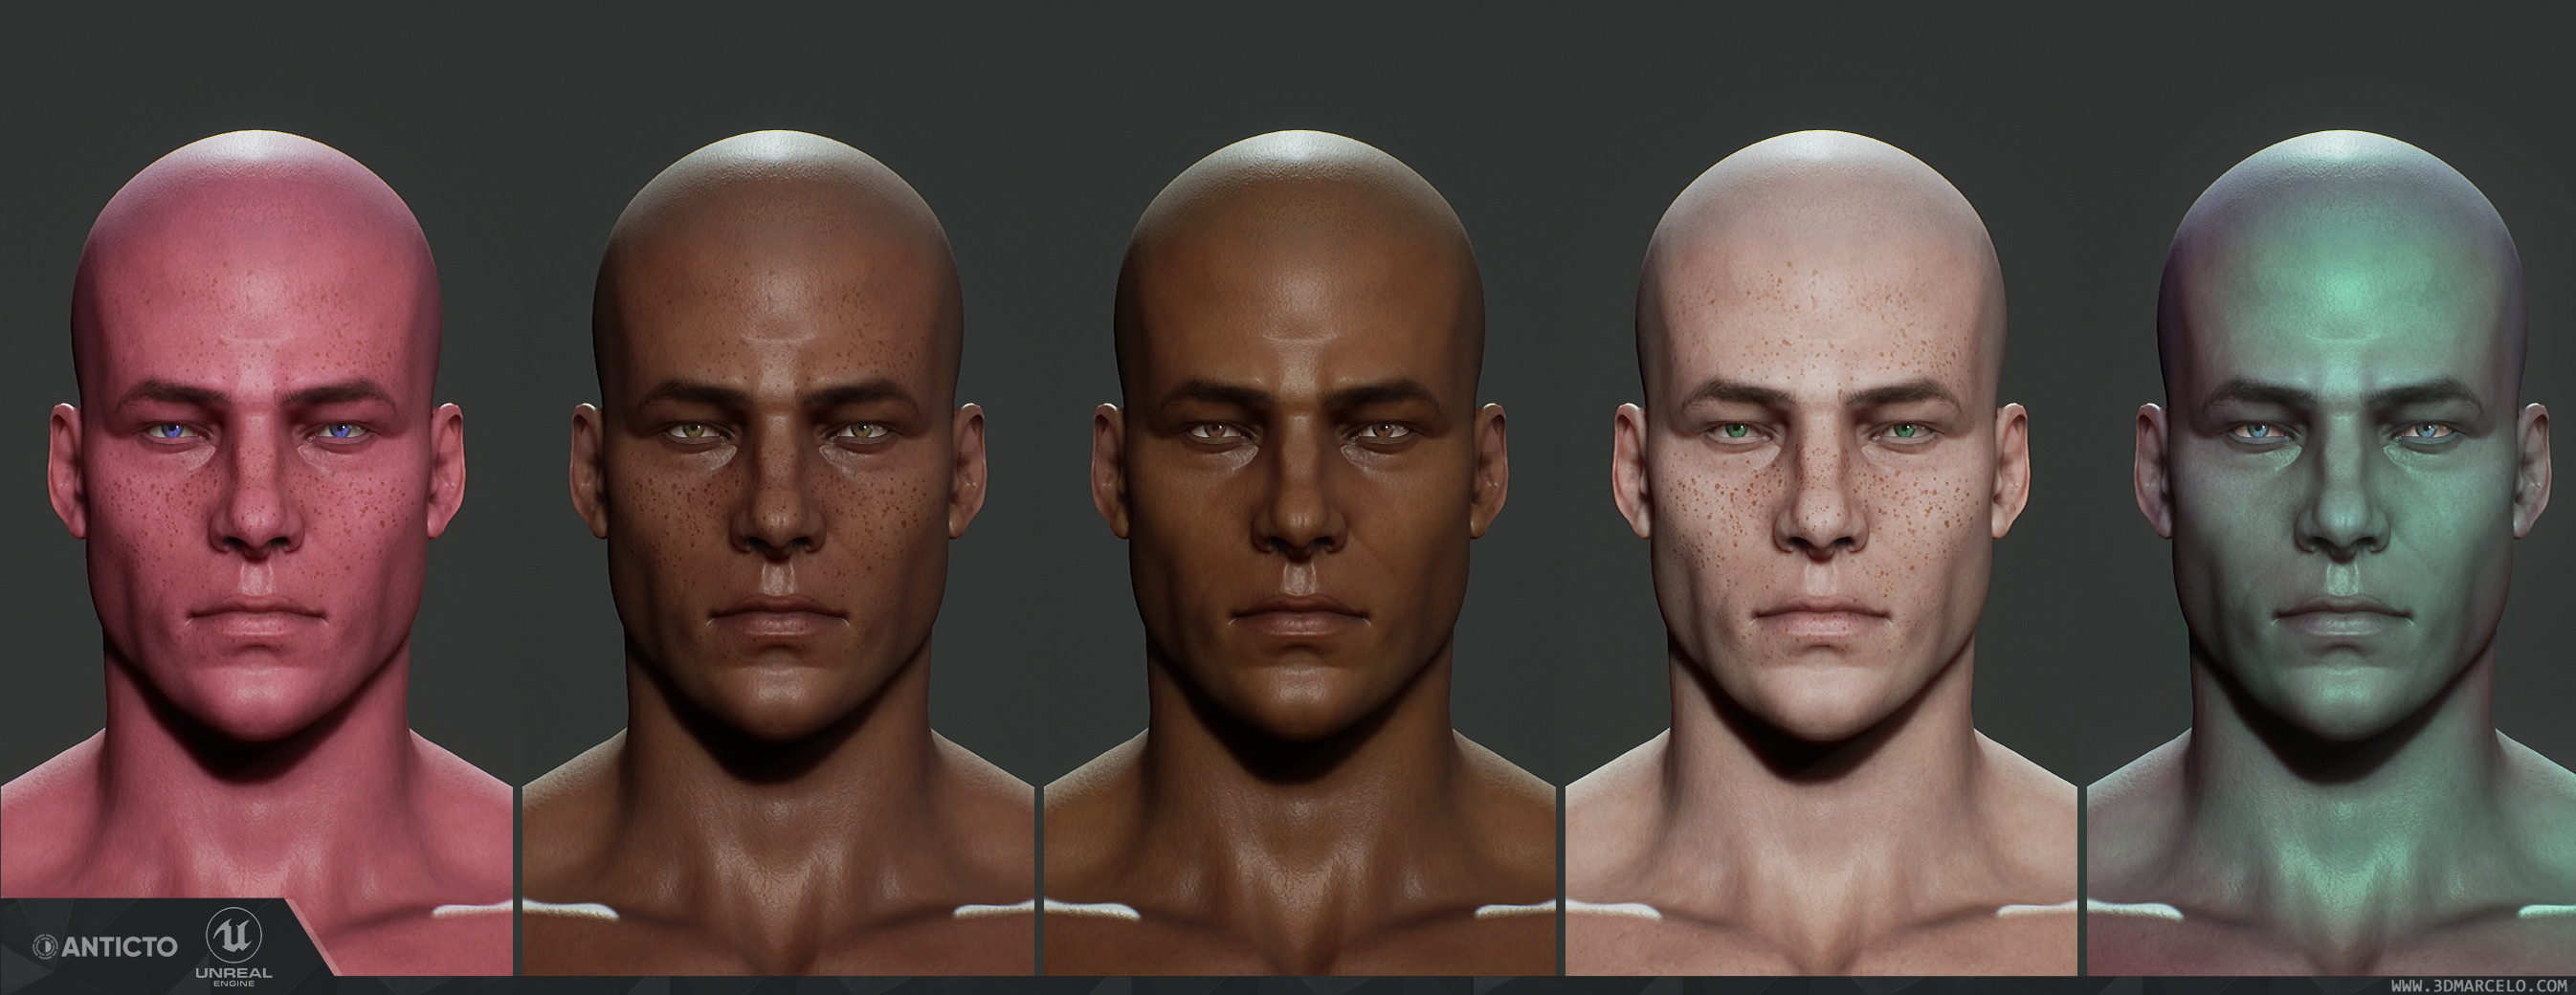 Shader dynamic skin & freckles color control